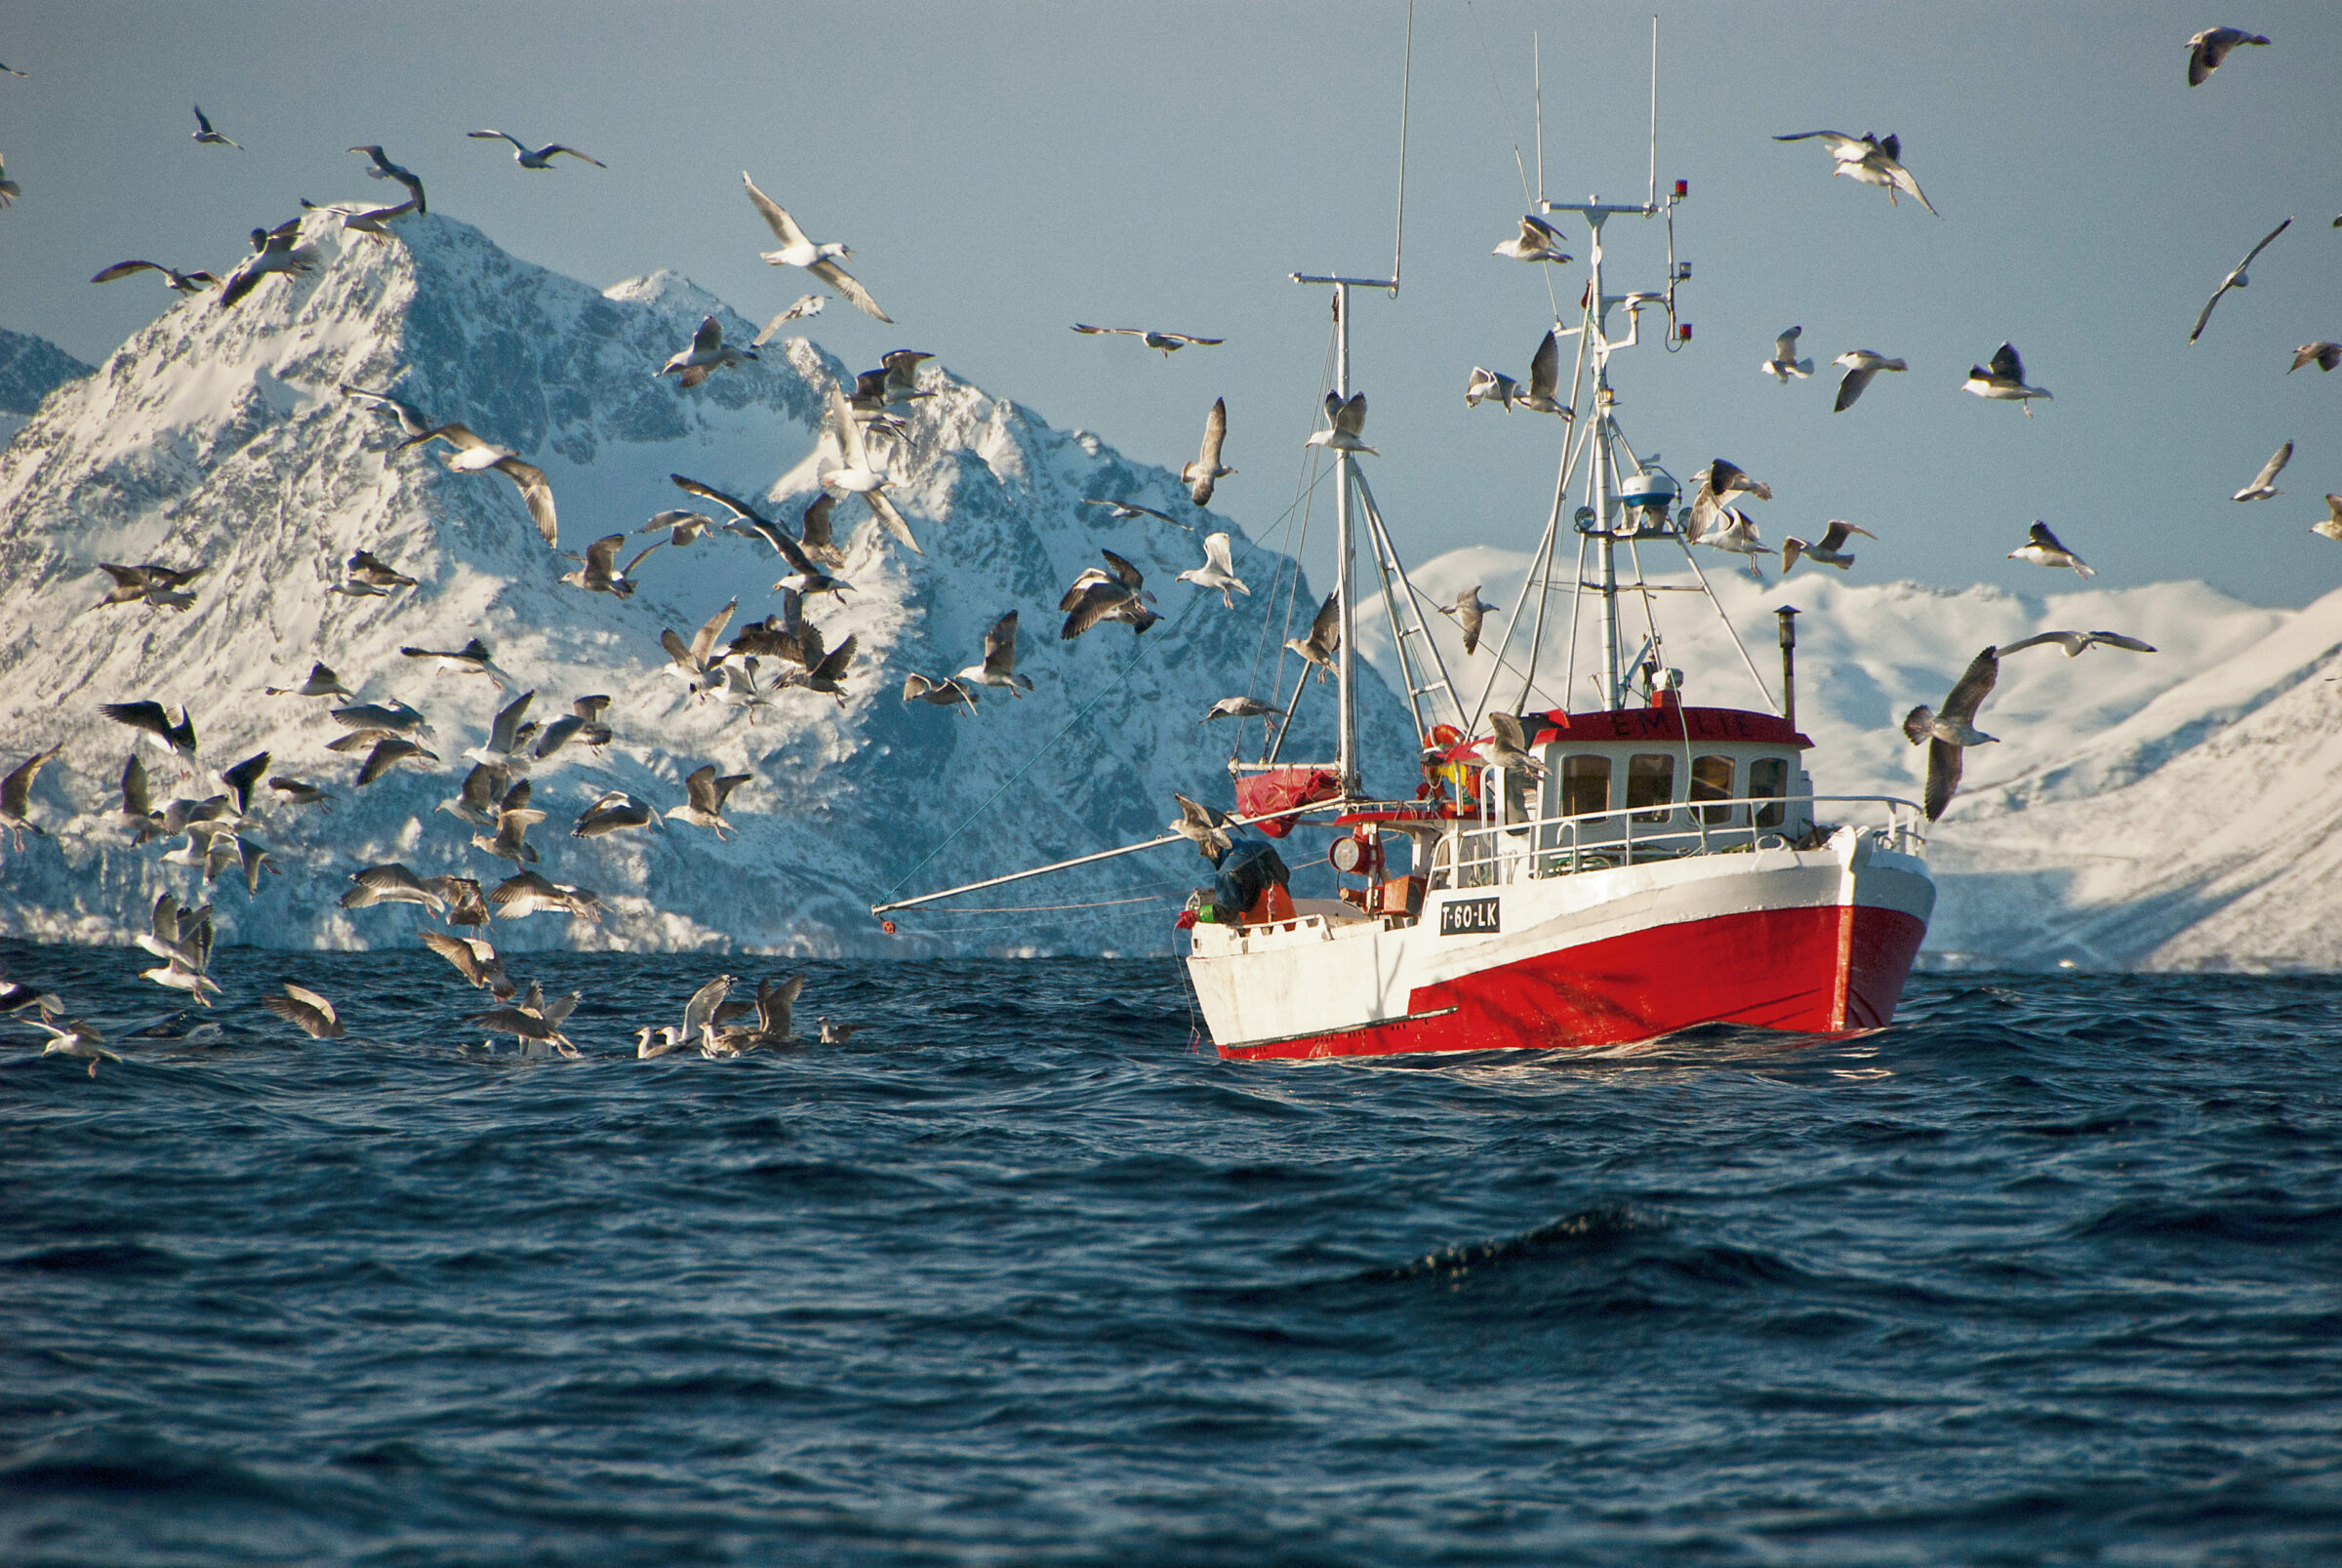 Red fishing boat in the Northern Norway with birds, sea and mountains surrounding it